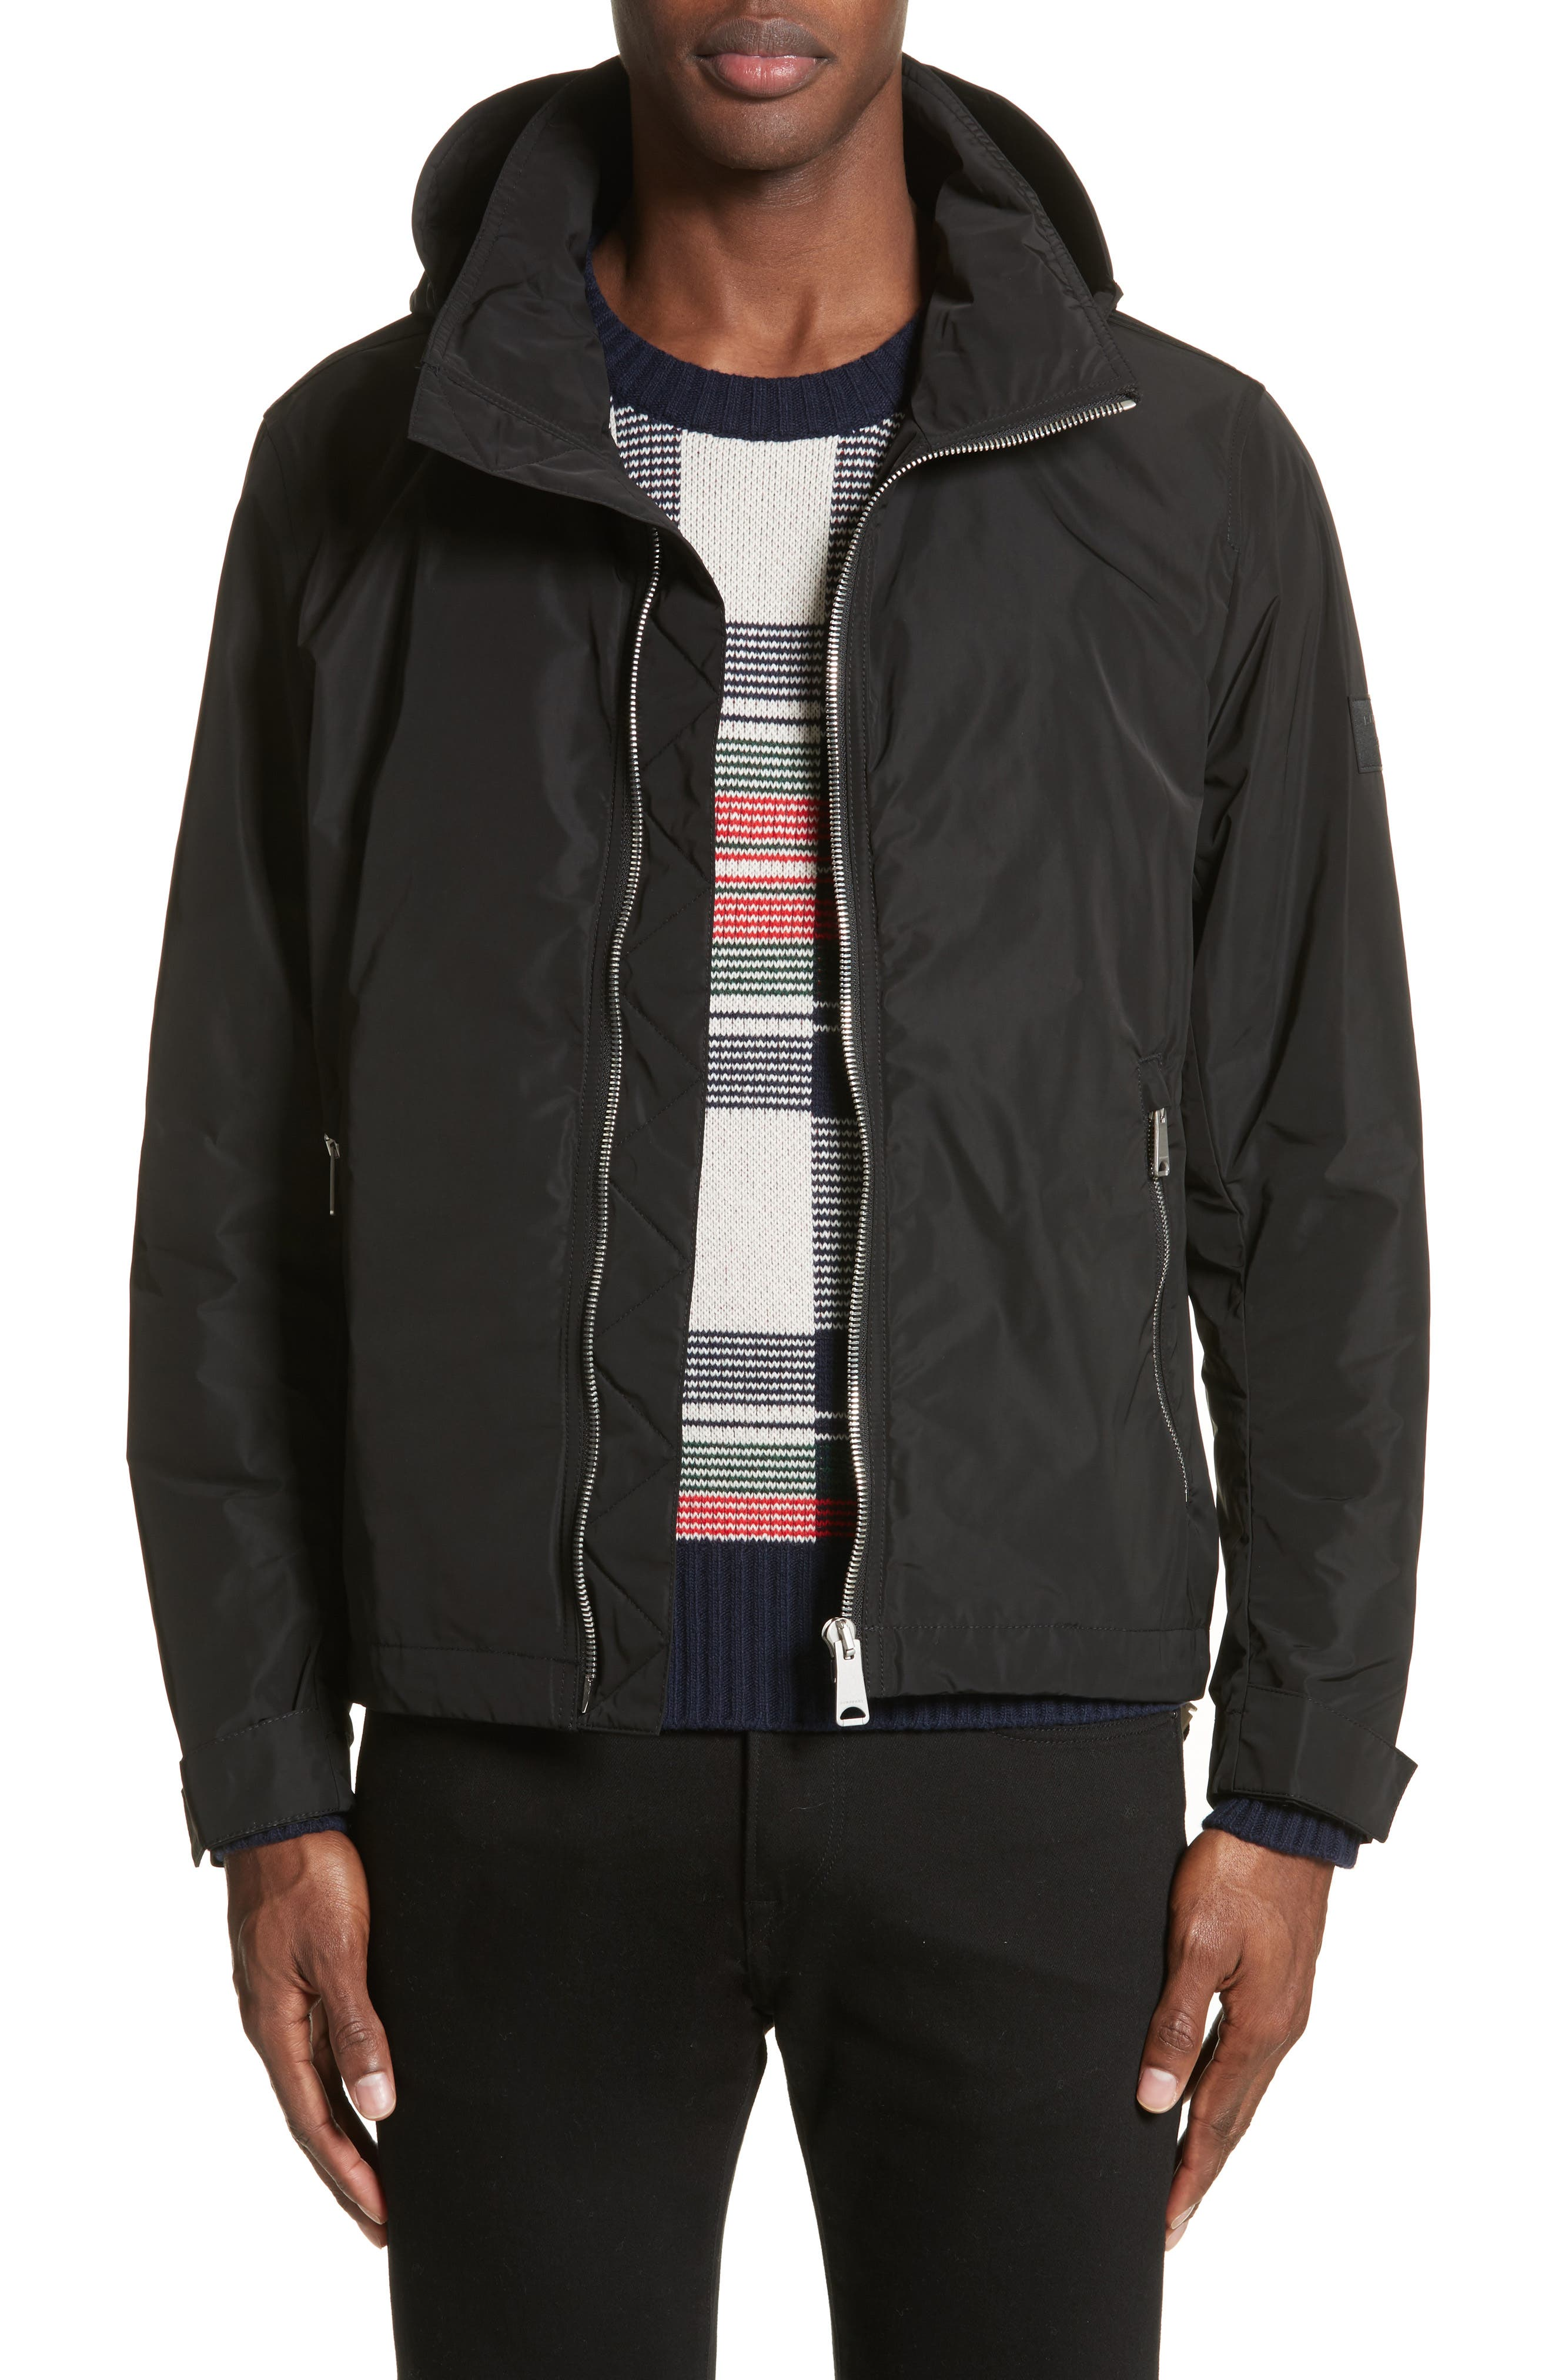 BURBERRY Hedley Stand Collar Jacket, Main, color, 001